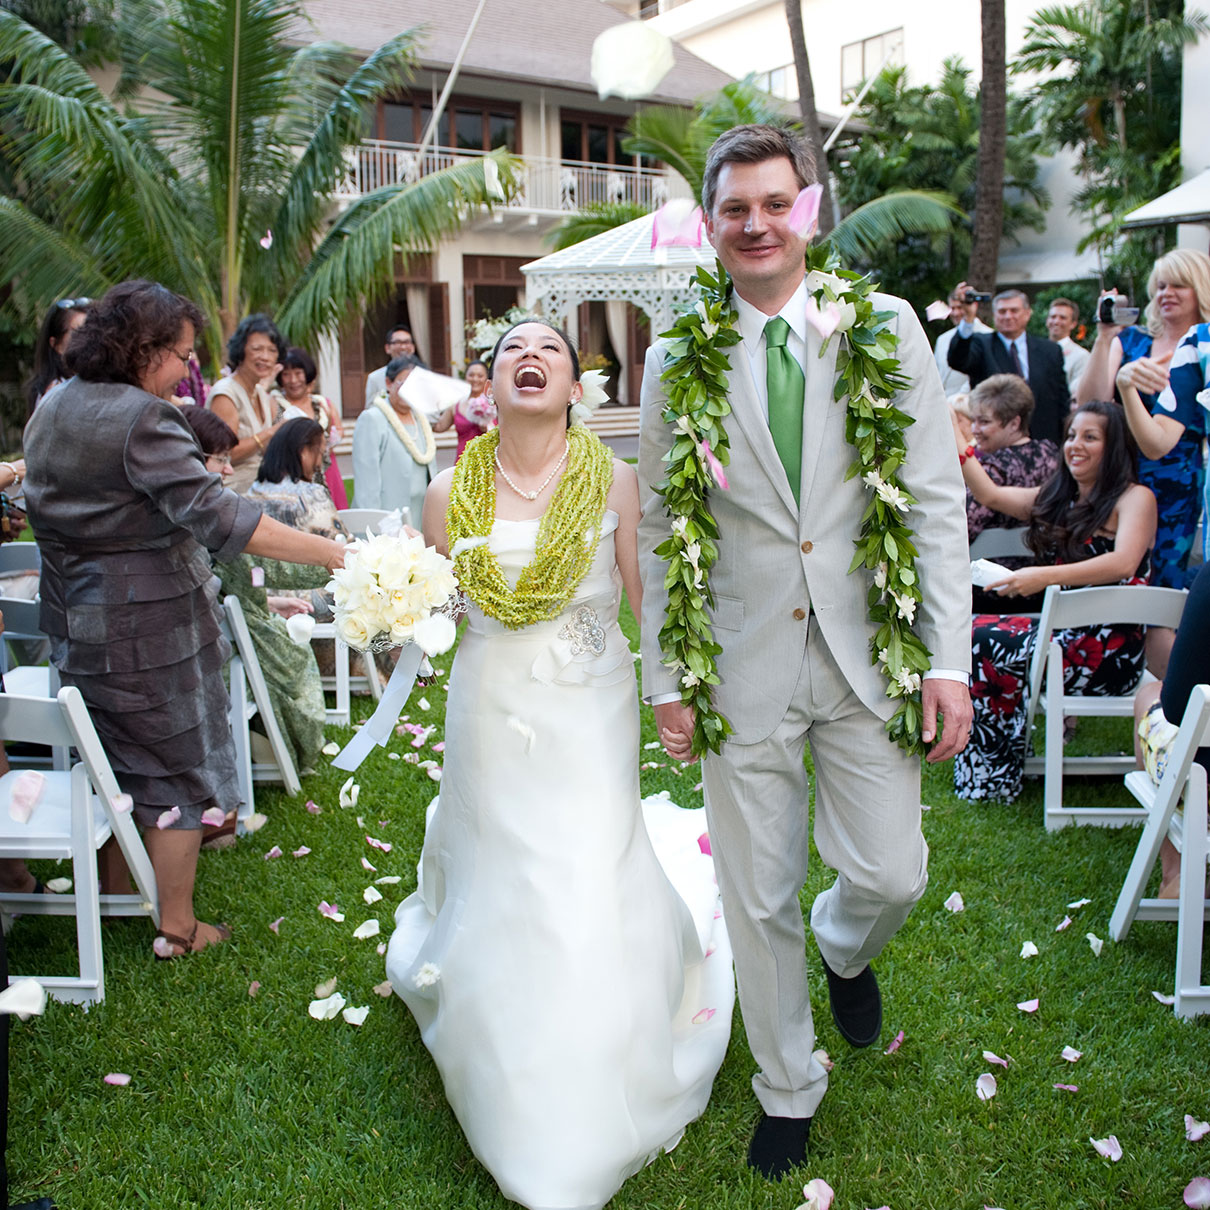 6c29306cd9 Bride and groom just married walking down the aisle at a destination wedding  in Hawaii by